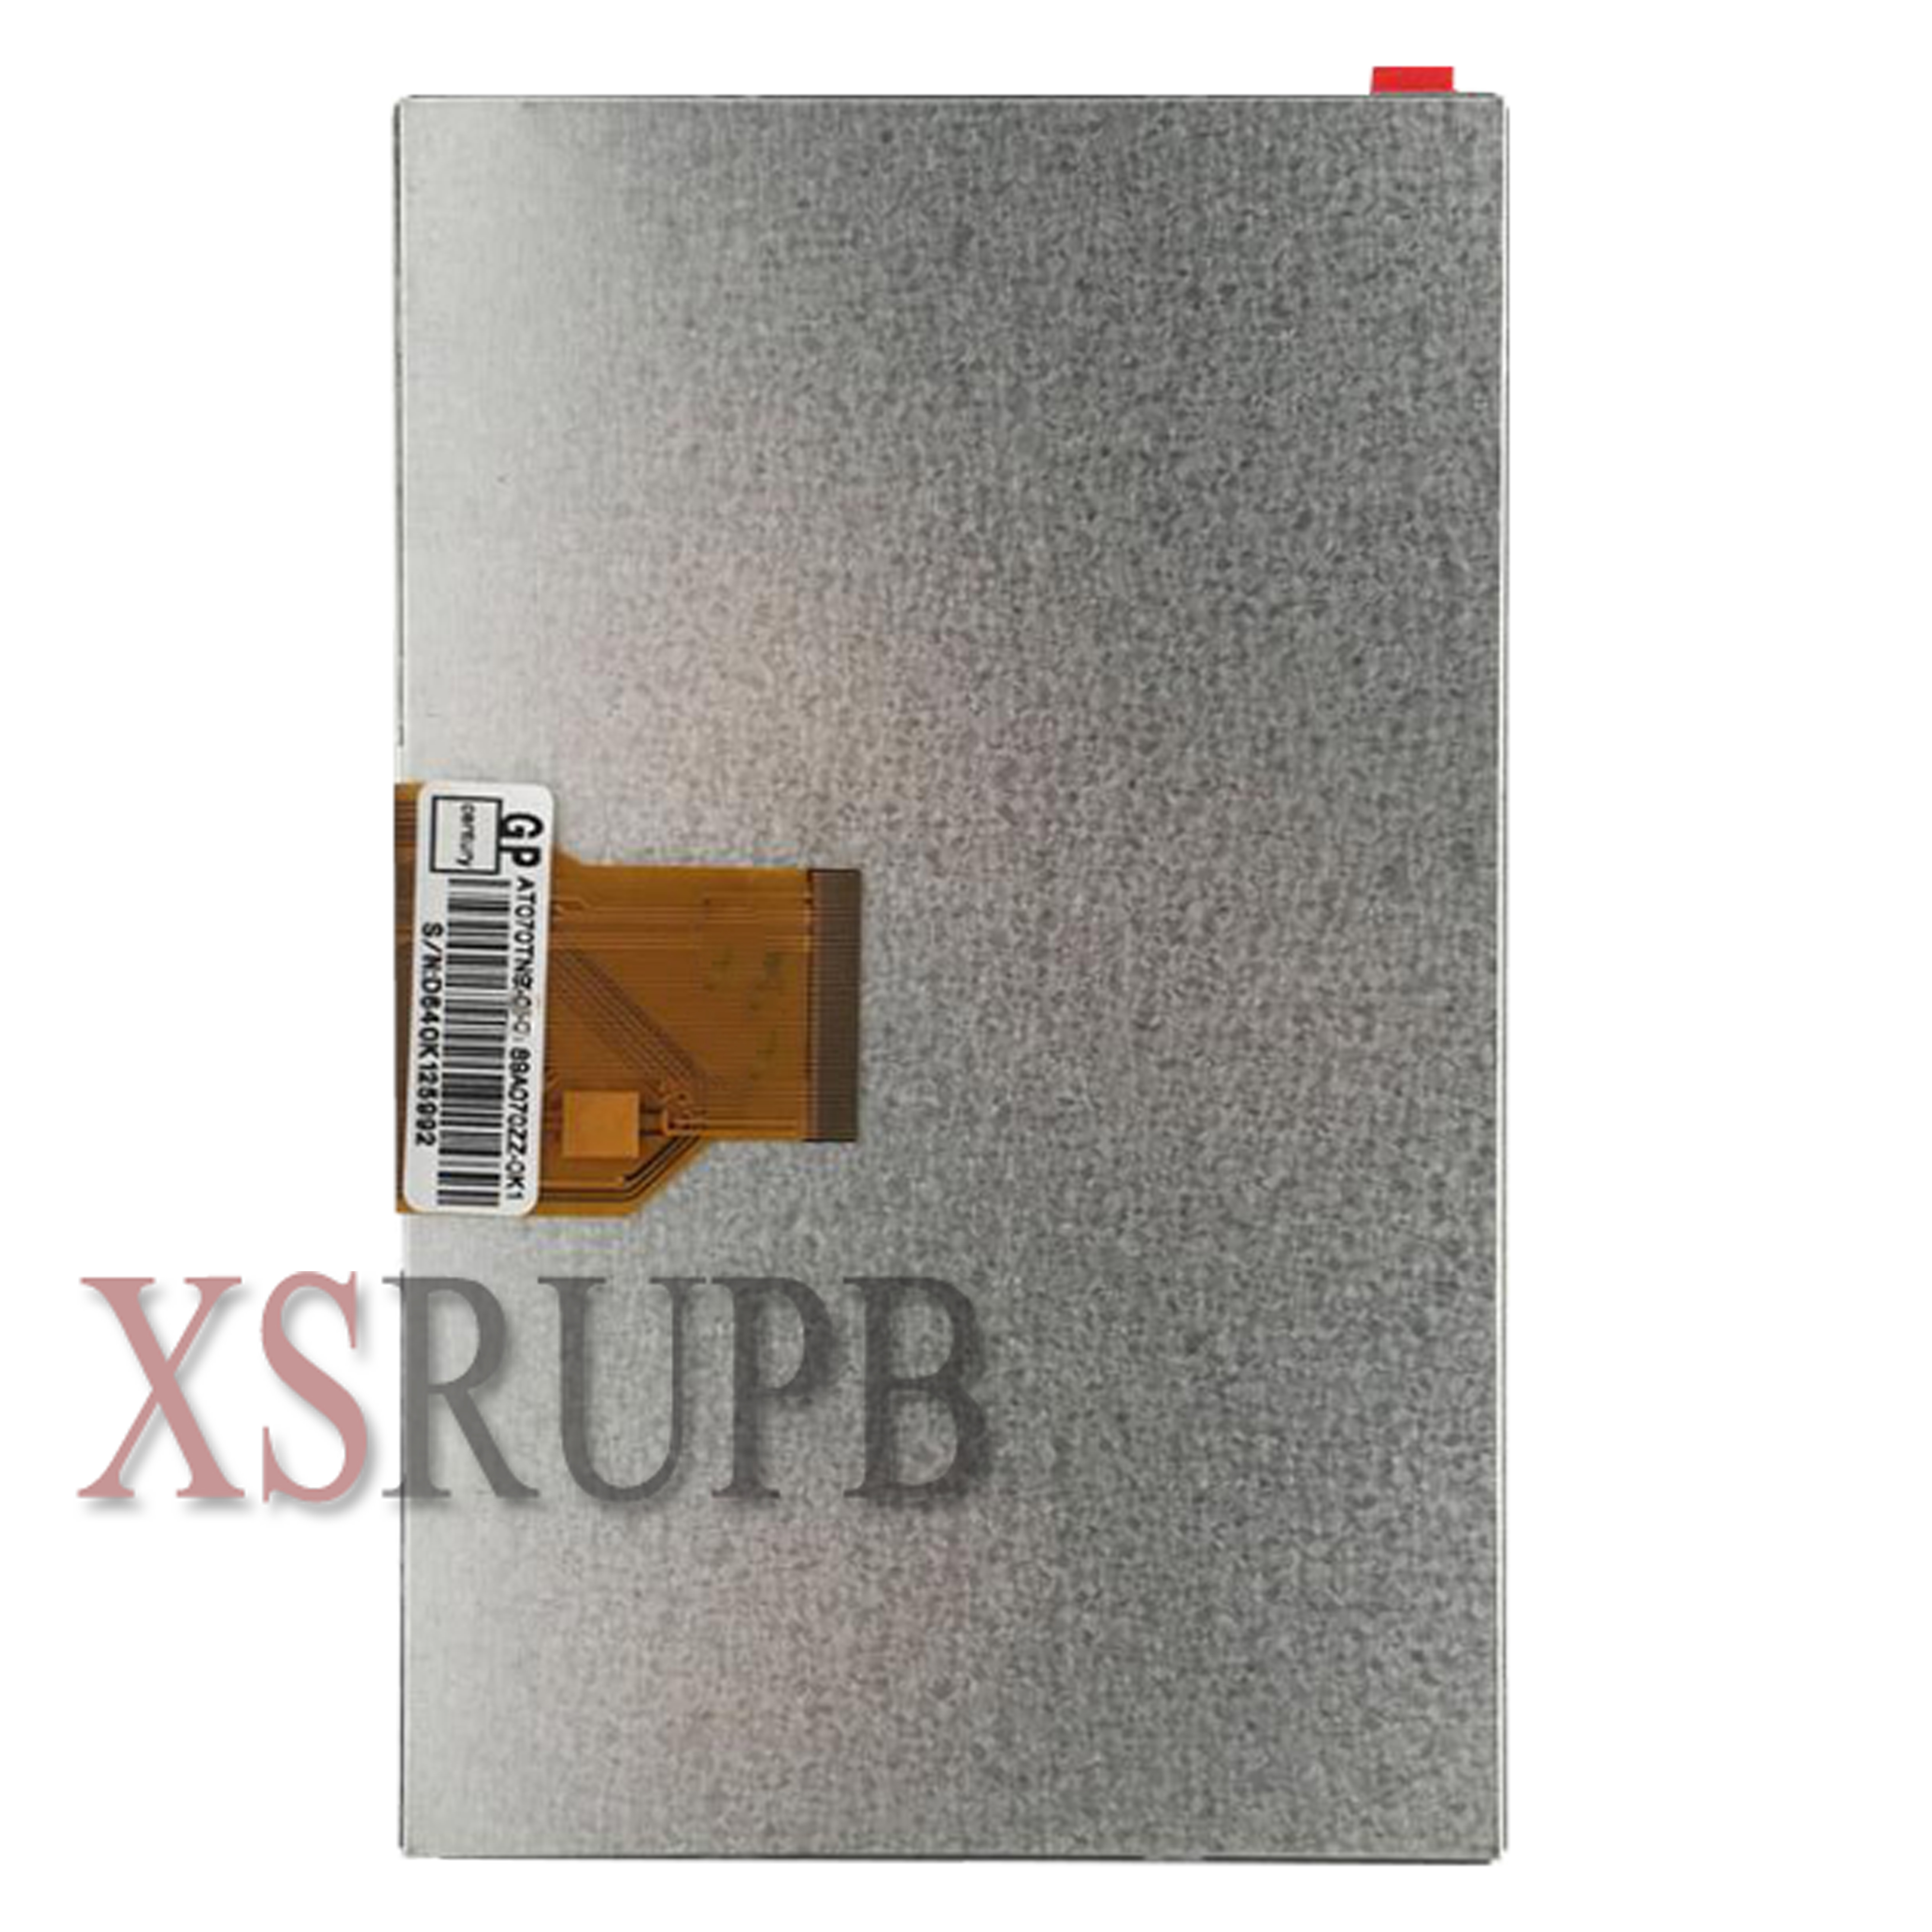 Original and New 7inch LCD screen CRD070TN03-50N M03 CRD070TN03-50N CRD070TN03 for tablet pc free shipping<br>